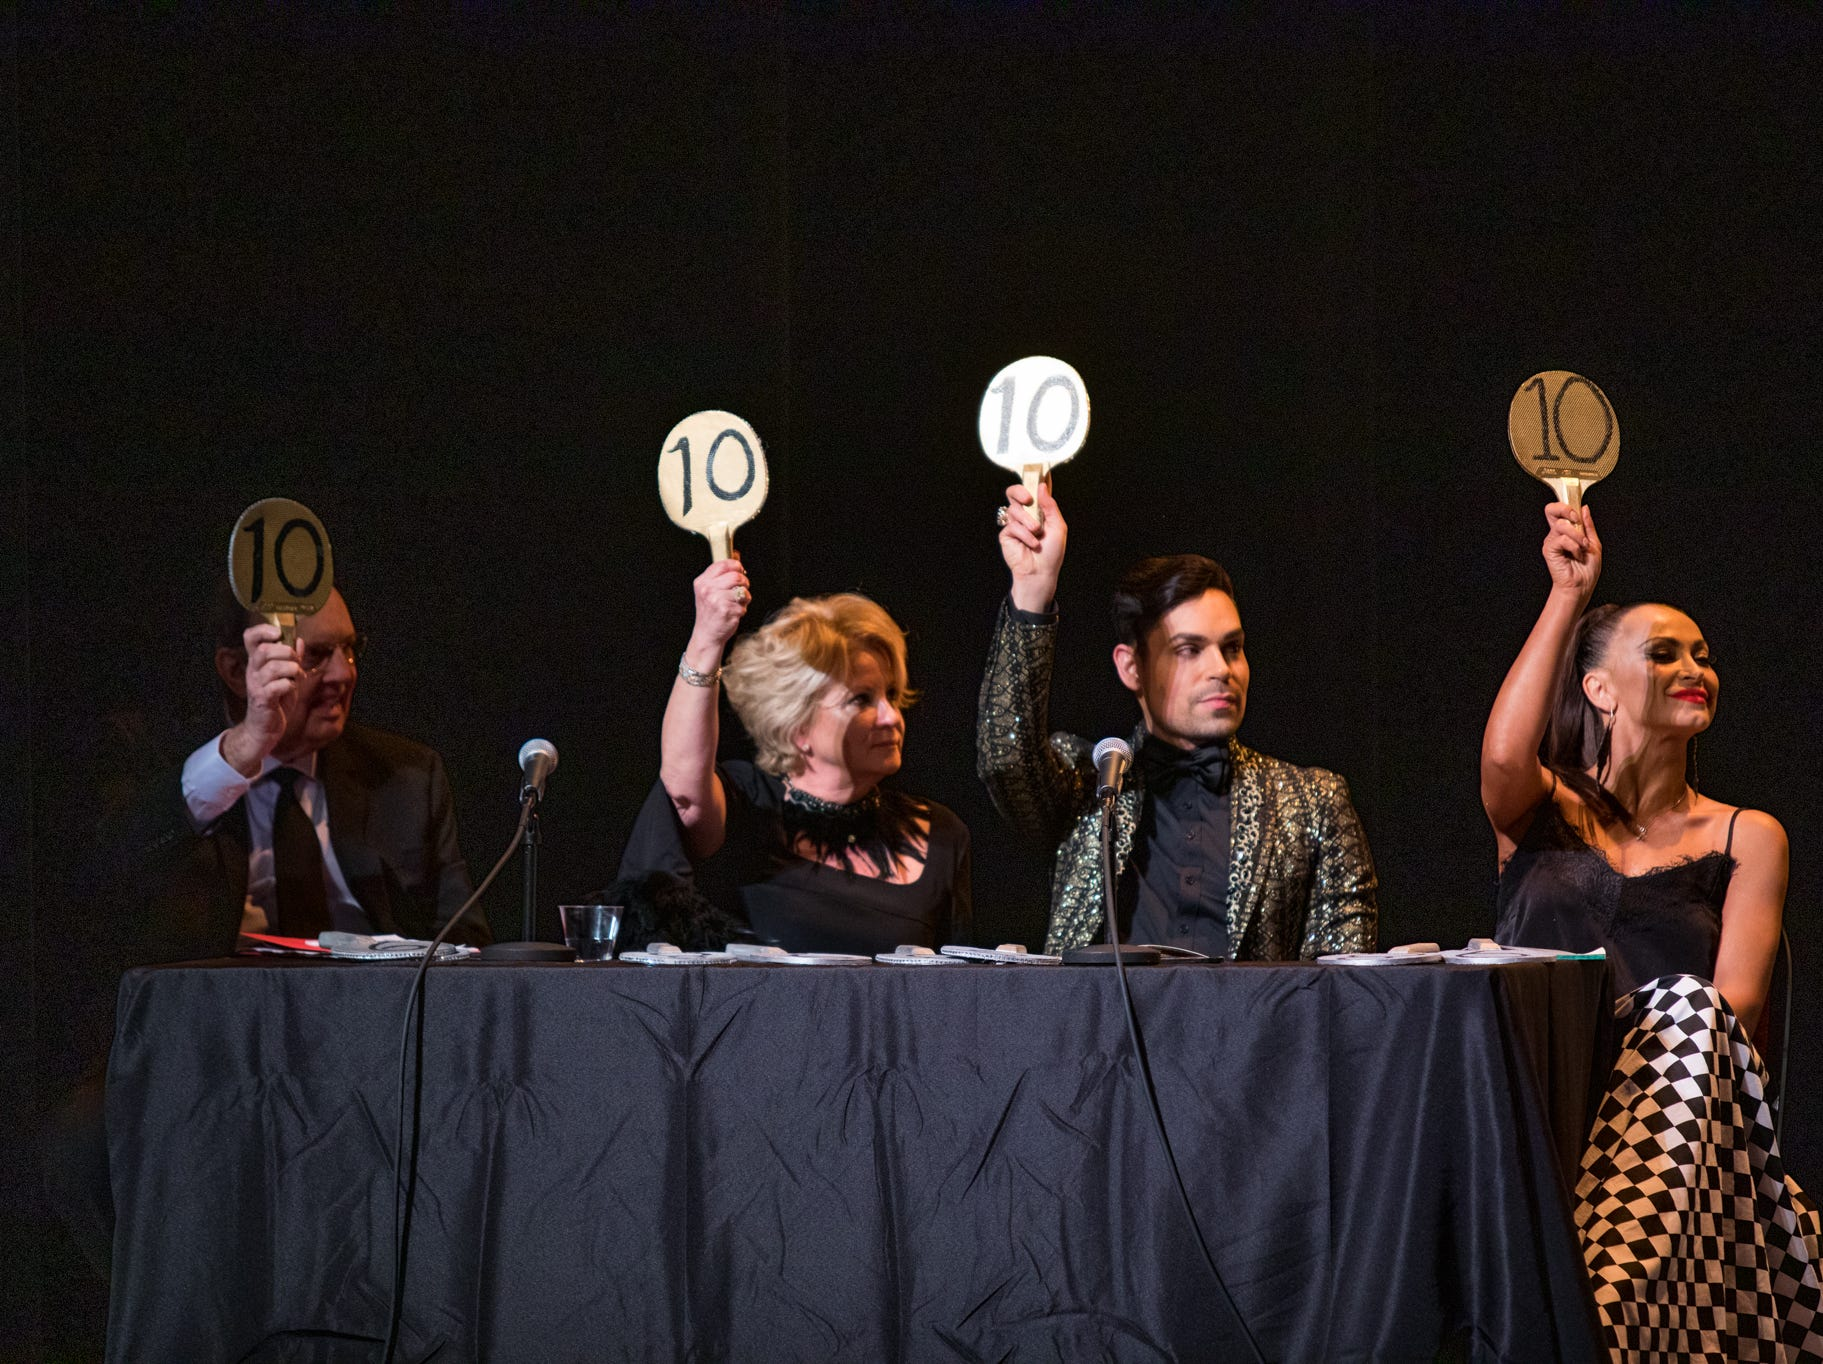 """K. Ray Bailey, Juli Dave, professional dancer Charlton Alicea and Karina Smirnoff of ABC's """"Dancing with the Stars"""" judge the """"Dancing with the Local Stars"""" fundraiser for the American Cancer Society Feb. 24, 2019, at the Diana Wortham Theatre."""